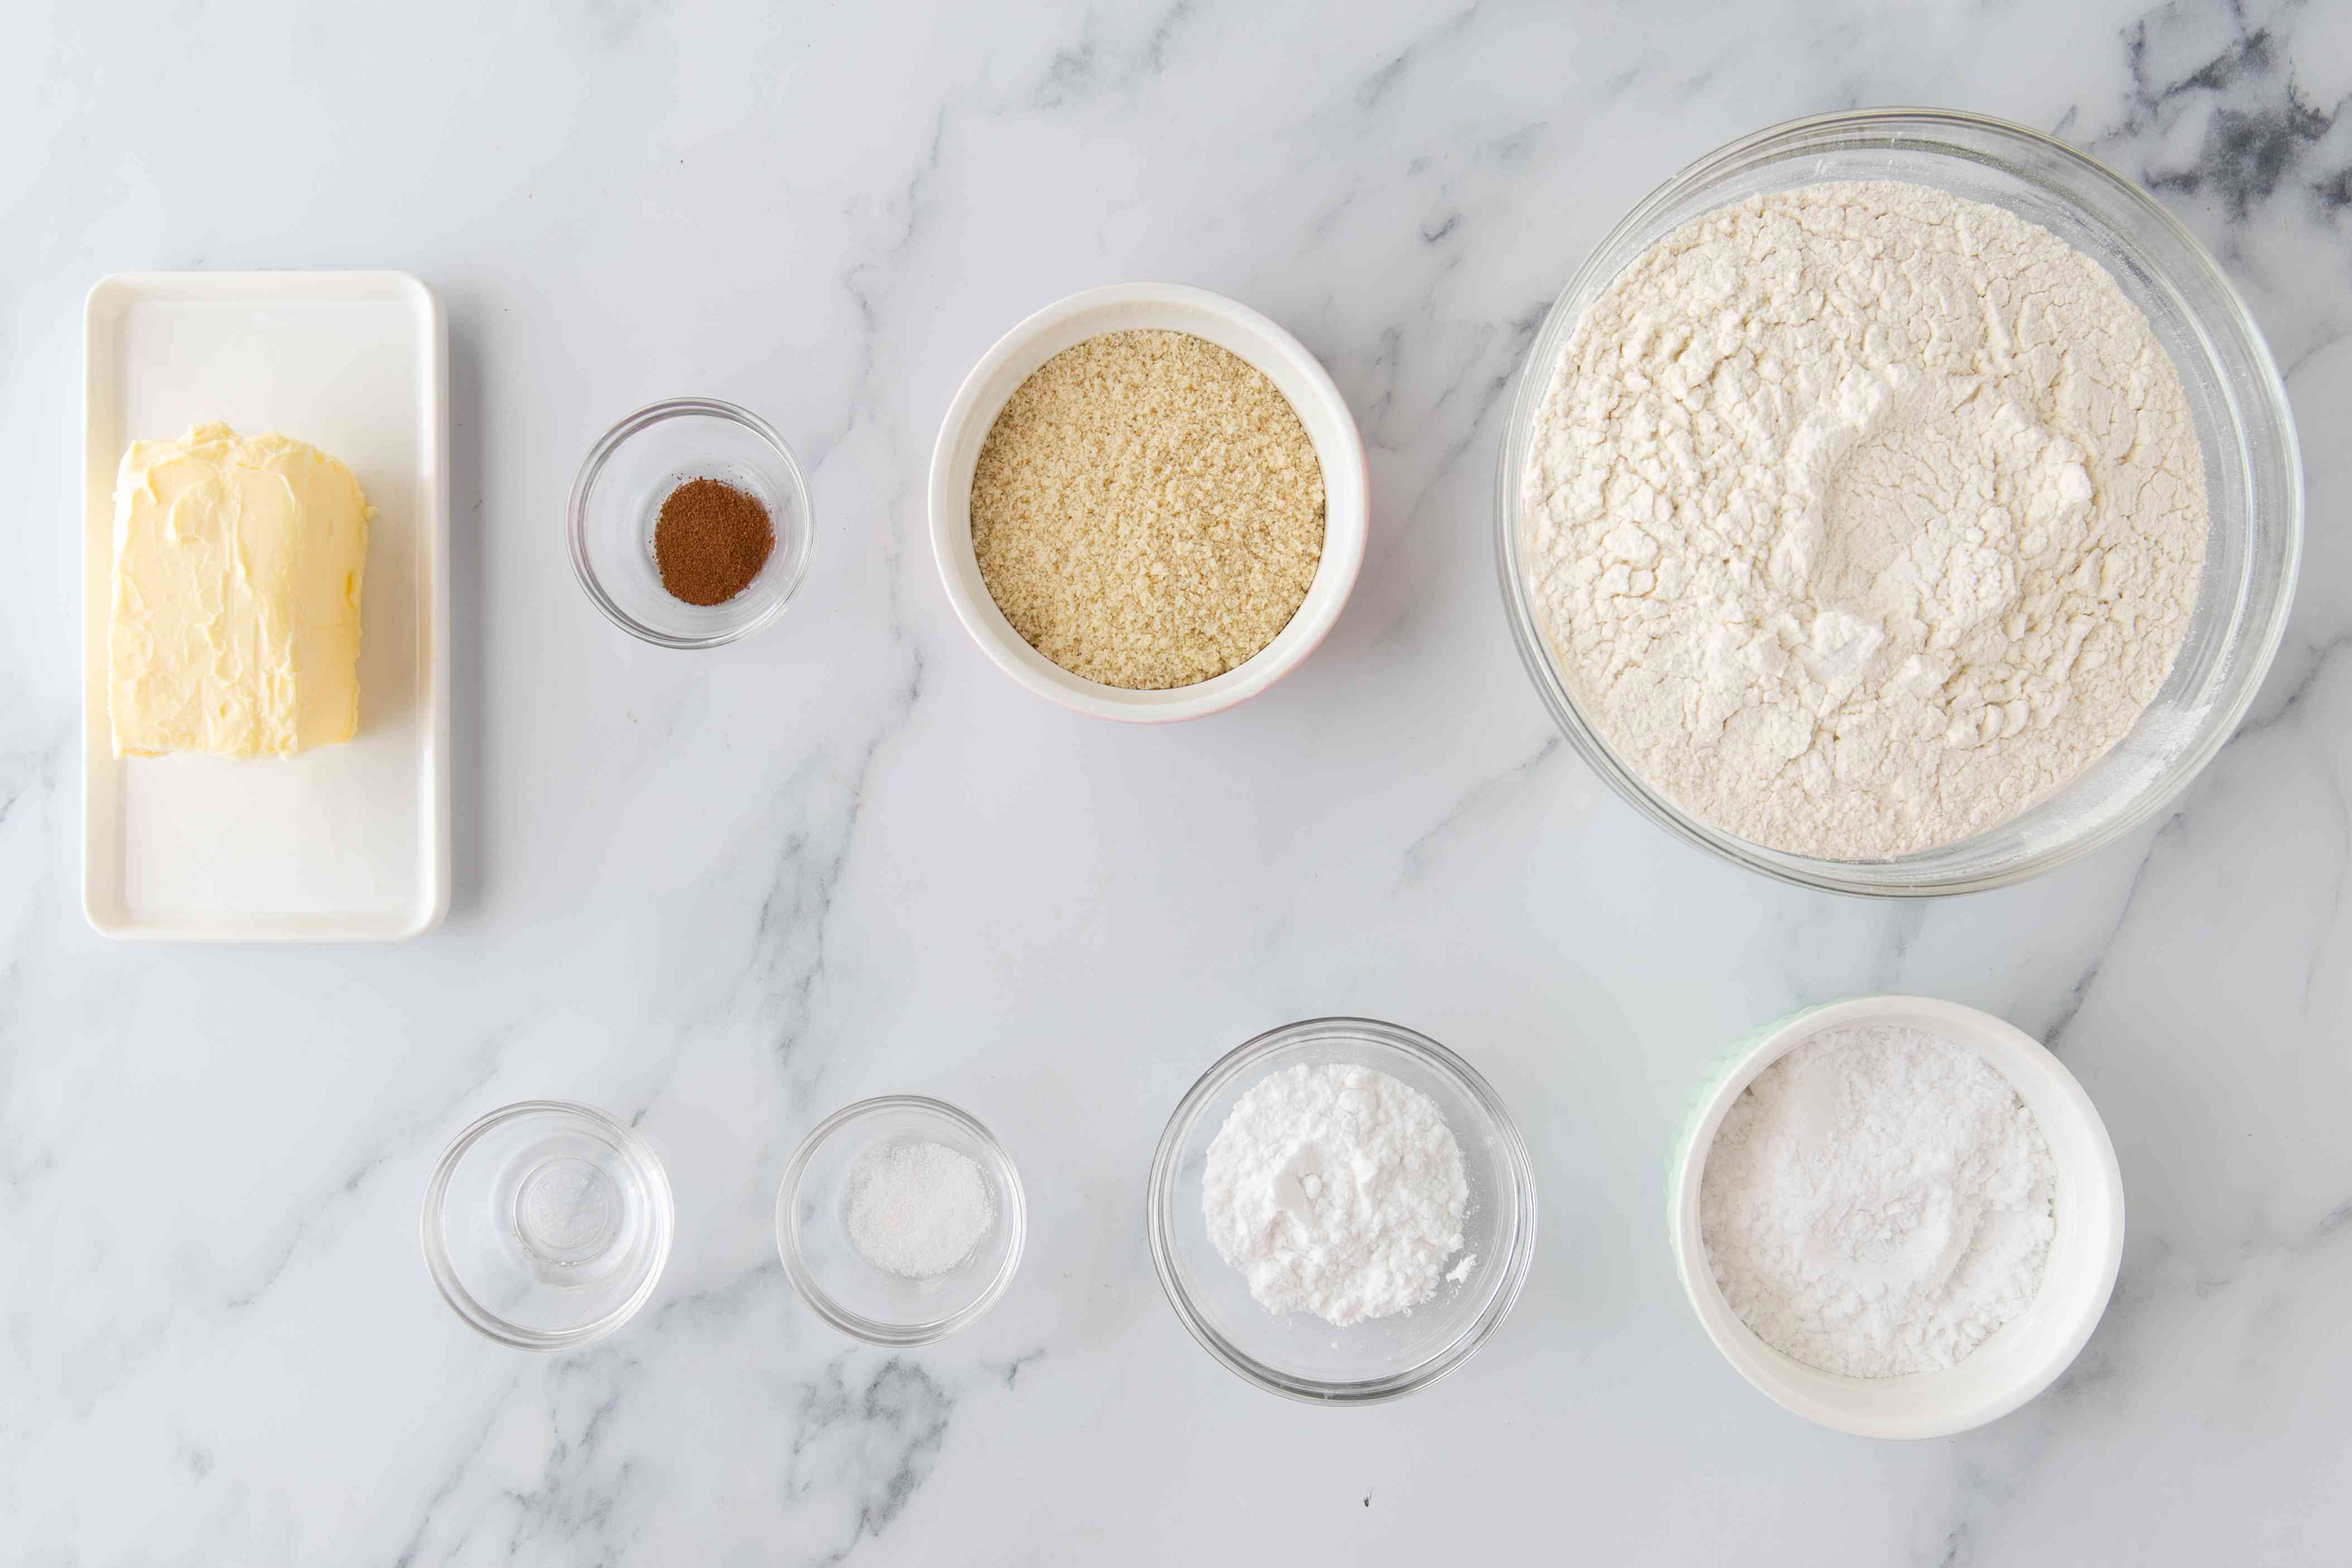 Ingredients for crumbly almond cookies polvorones de almendra